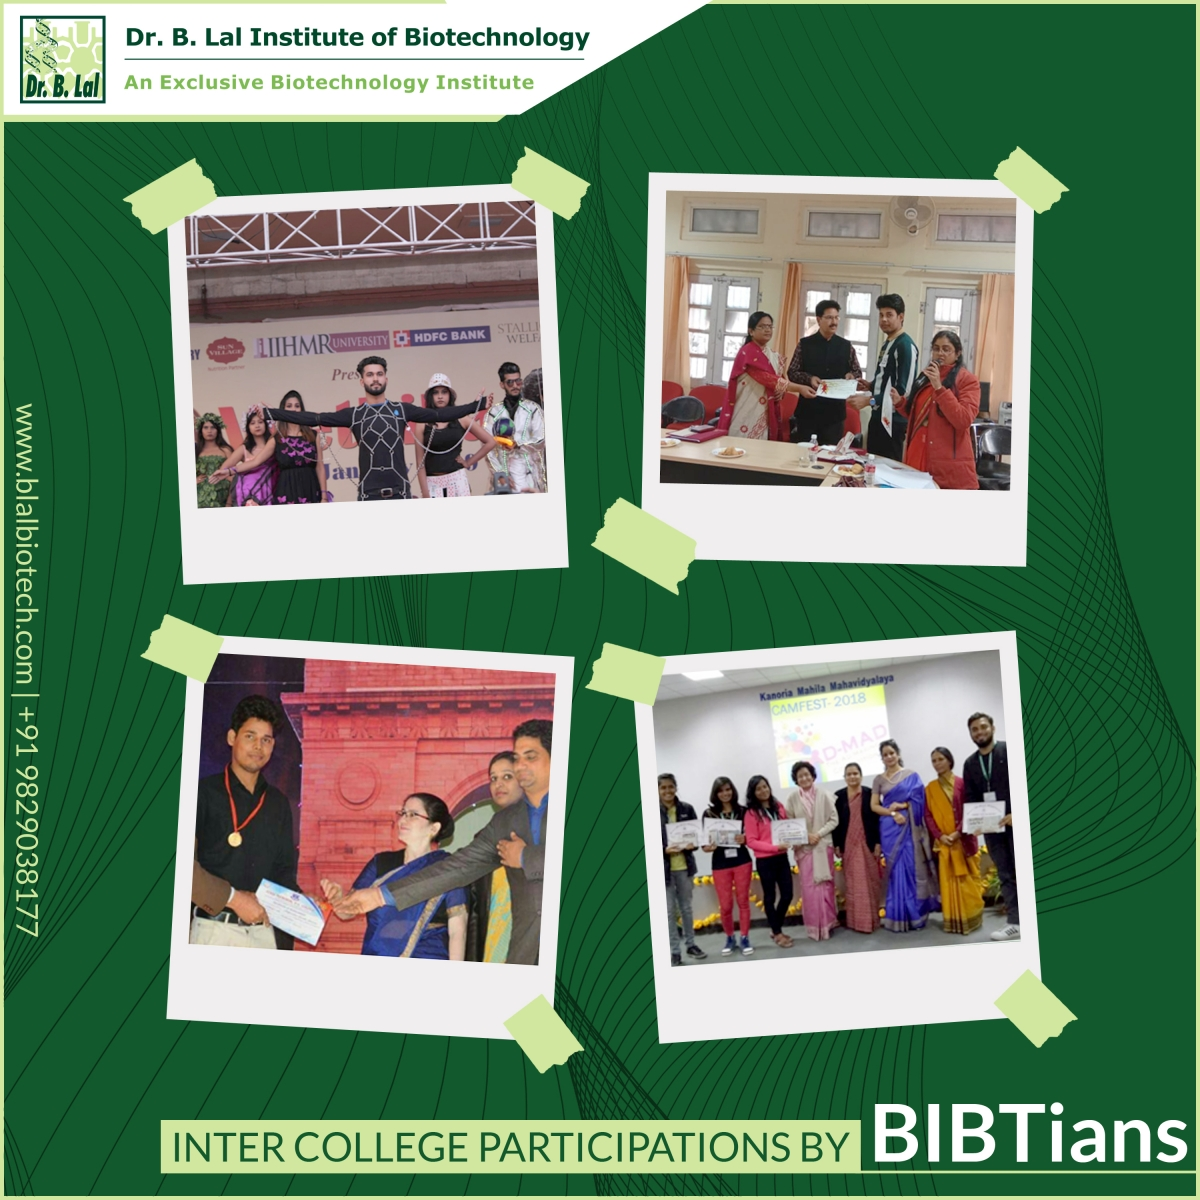 Inter College Participation By BIBTians